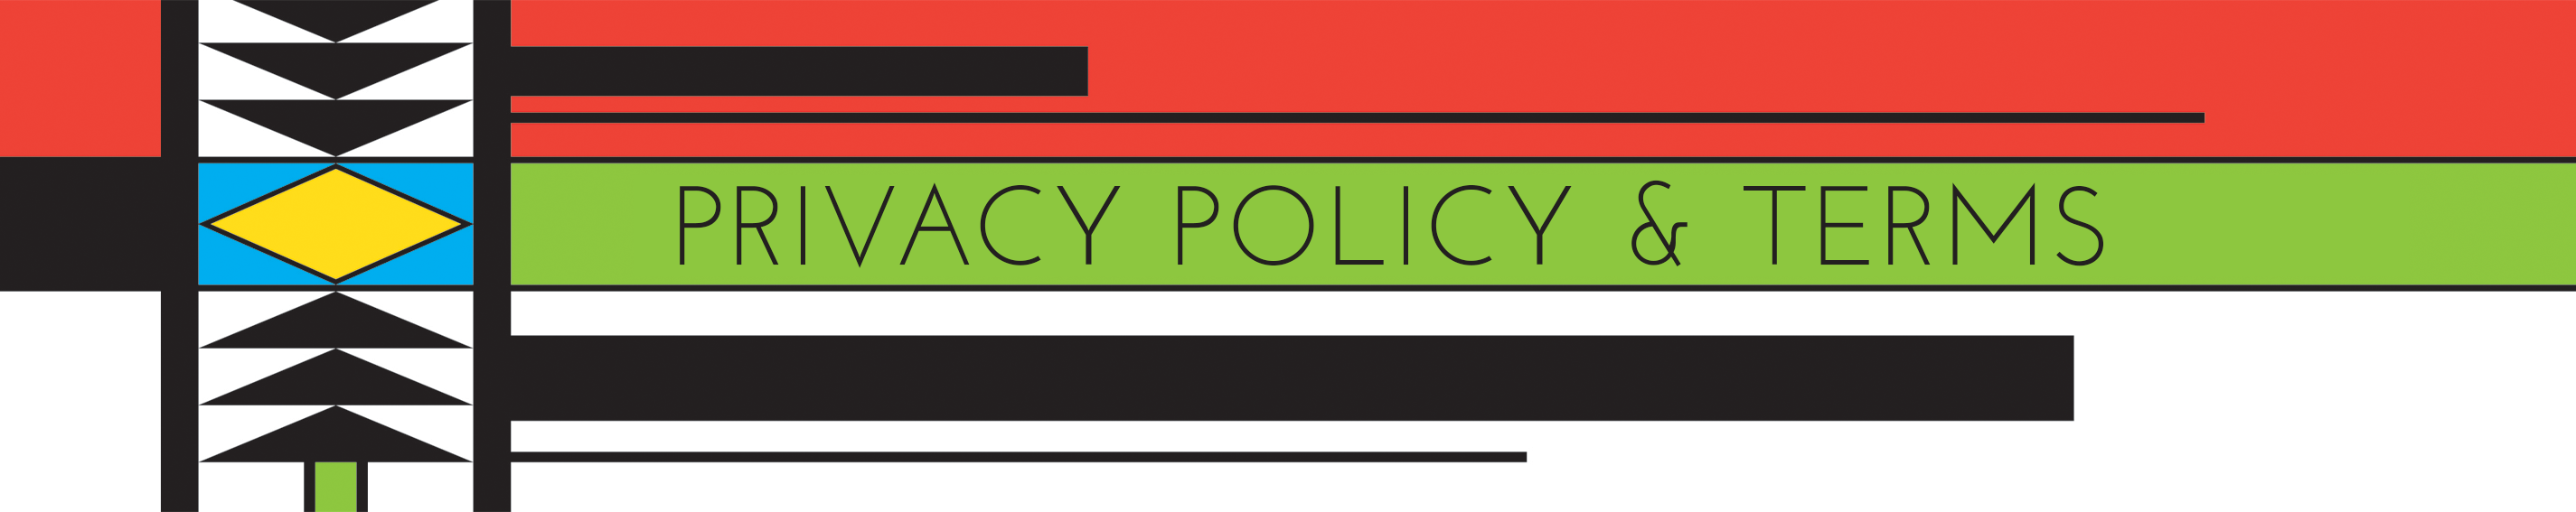 Privacy Policy & Terms Header